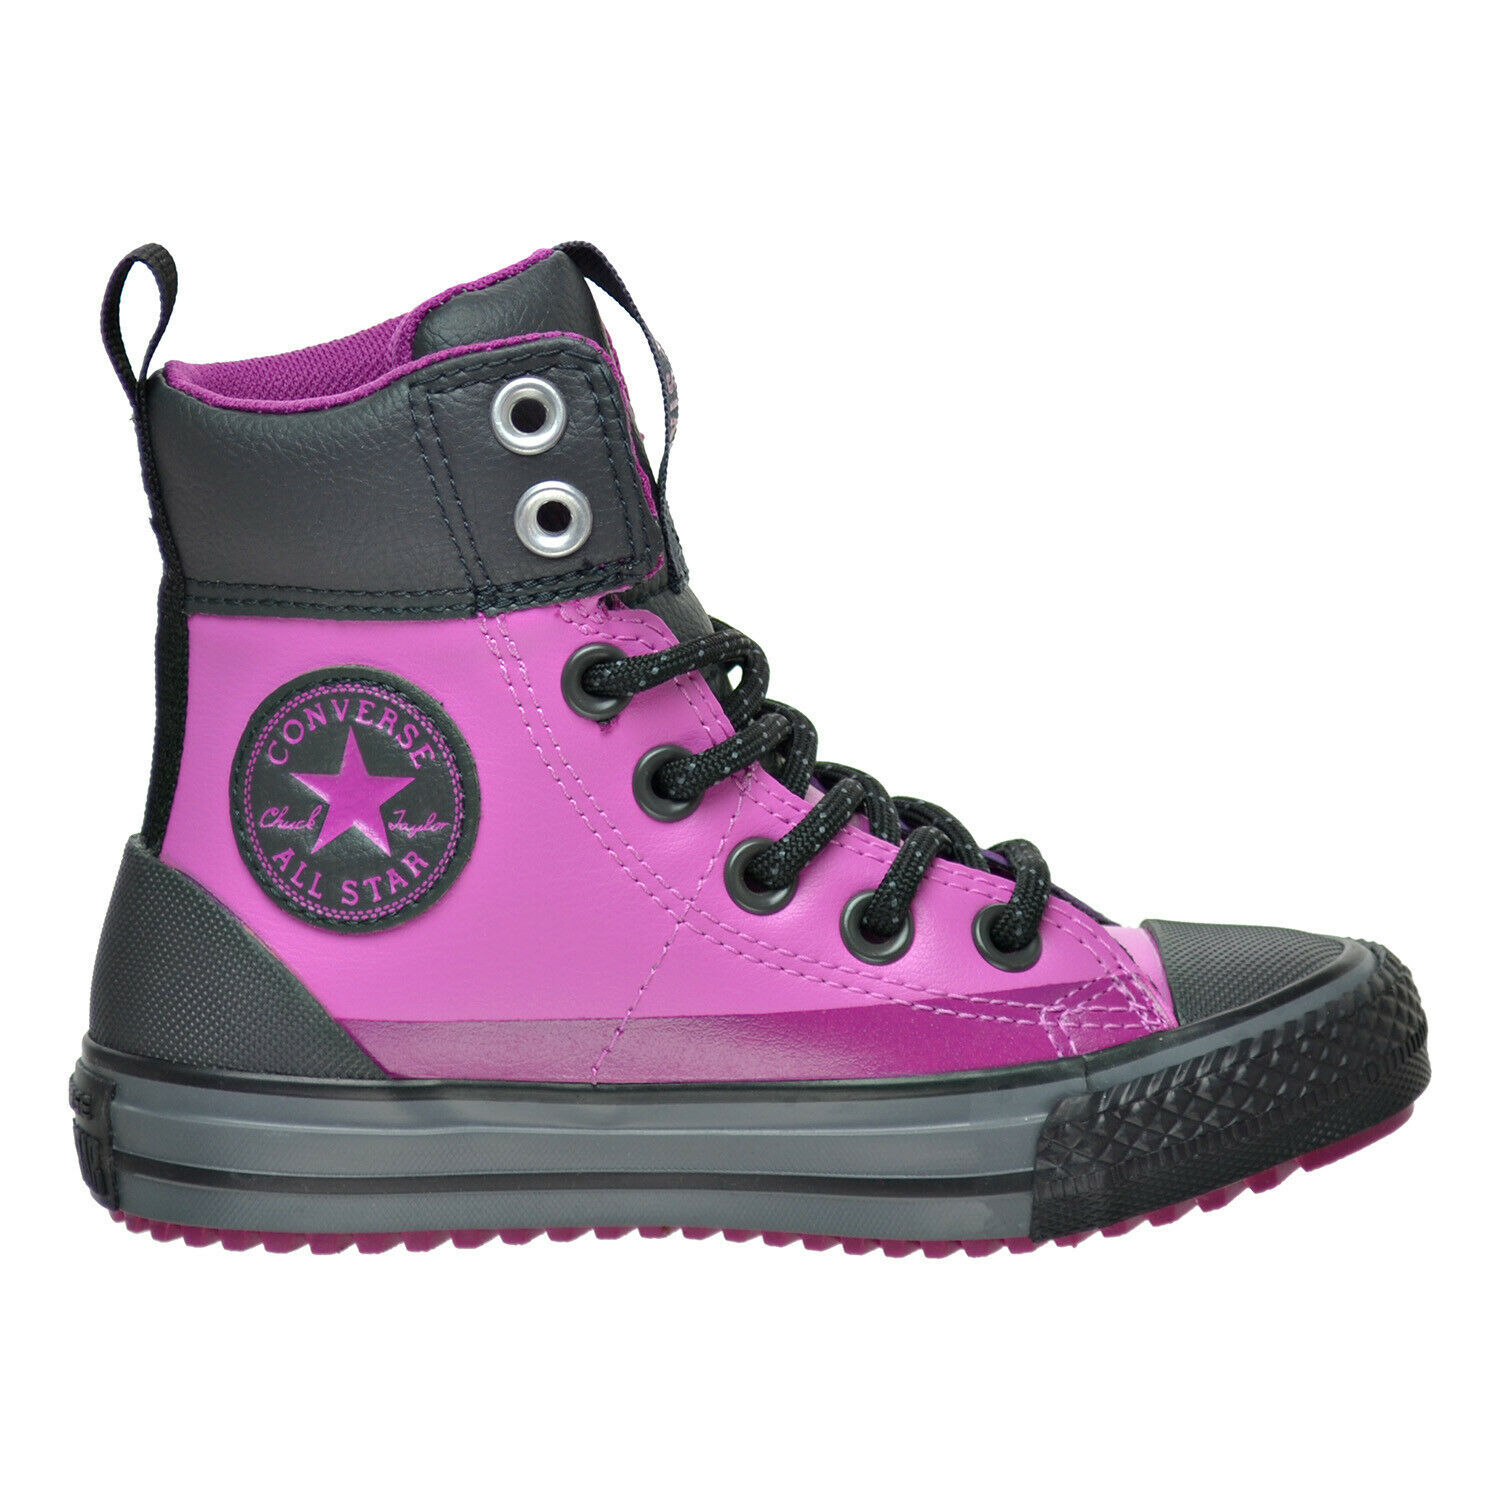 Primary image for Converse Chuck Taylor Asphalt Little Kids-Big Kid's Boots Dahlia Pink 650006c